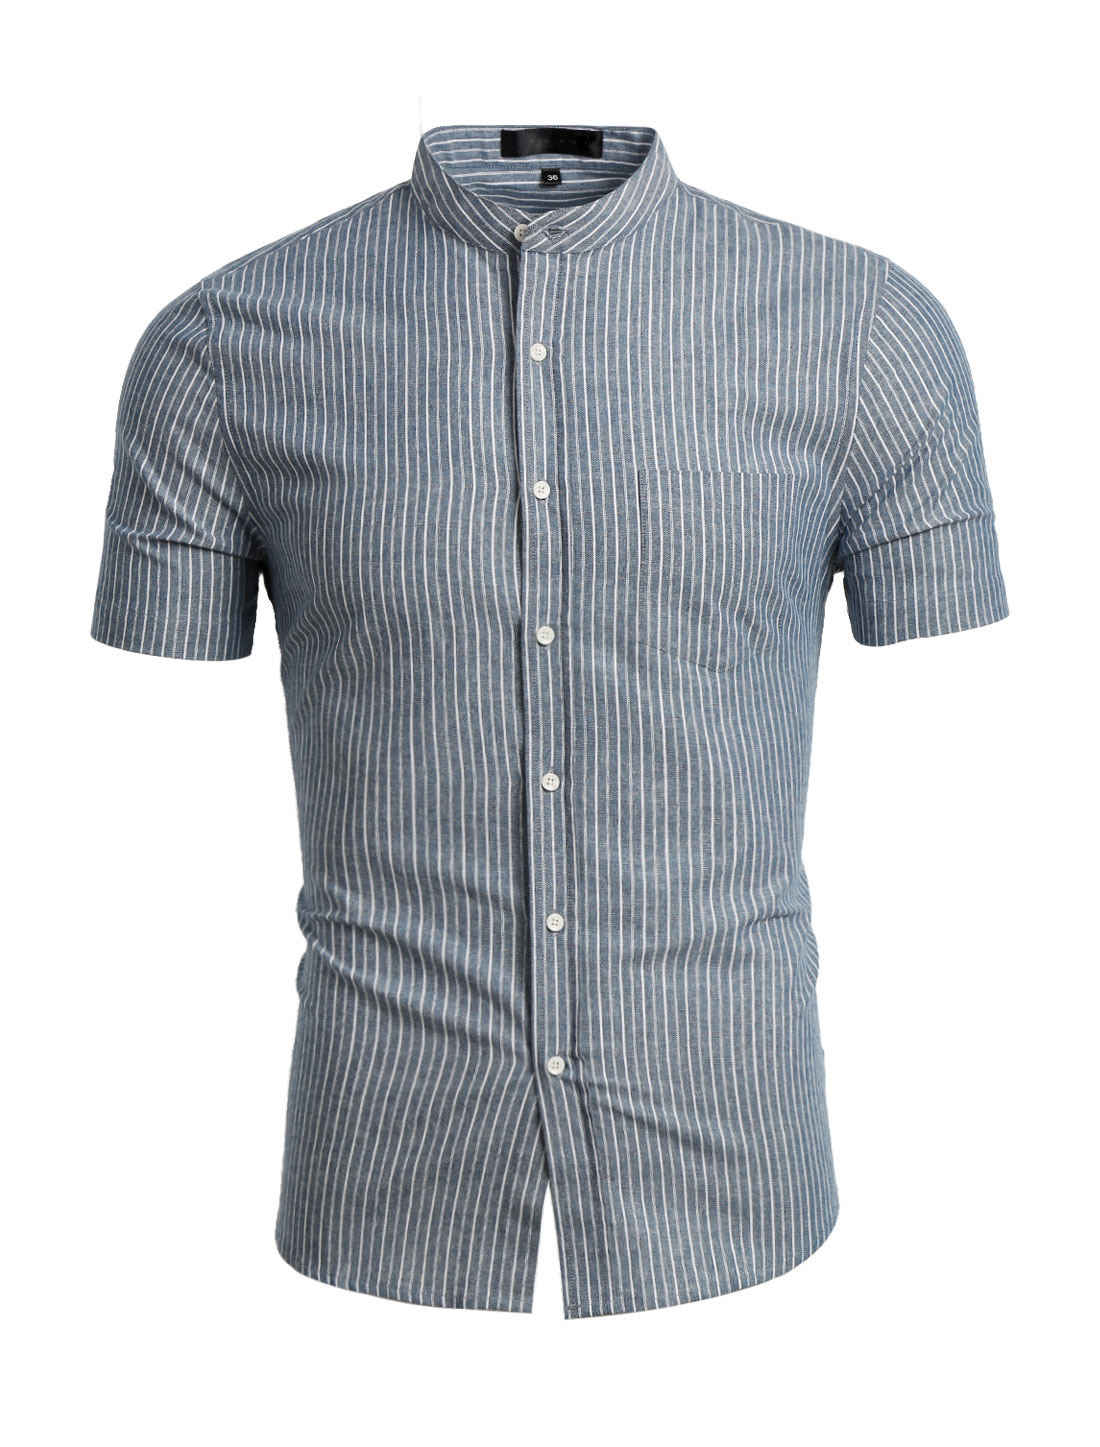 Men Banded Collar Short Sleeves Stripes Pattern Shirt Gray L